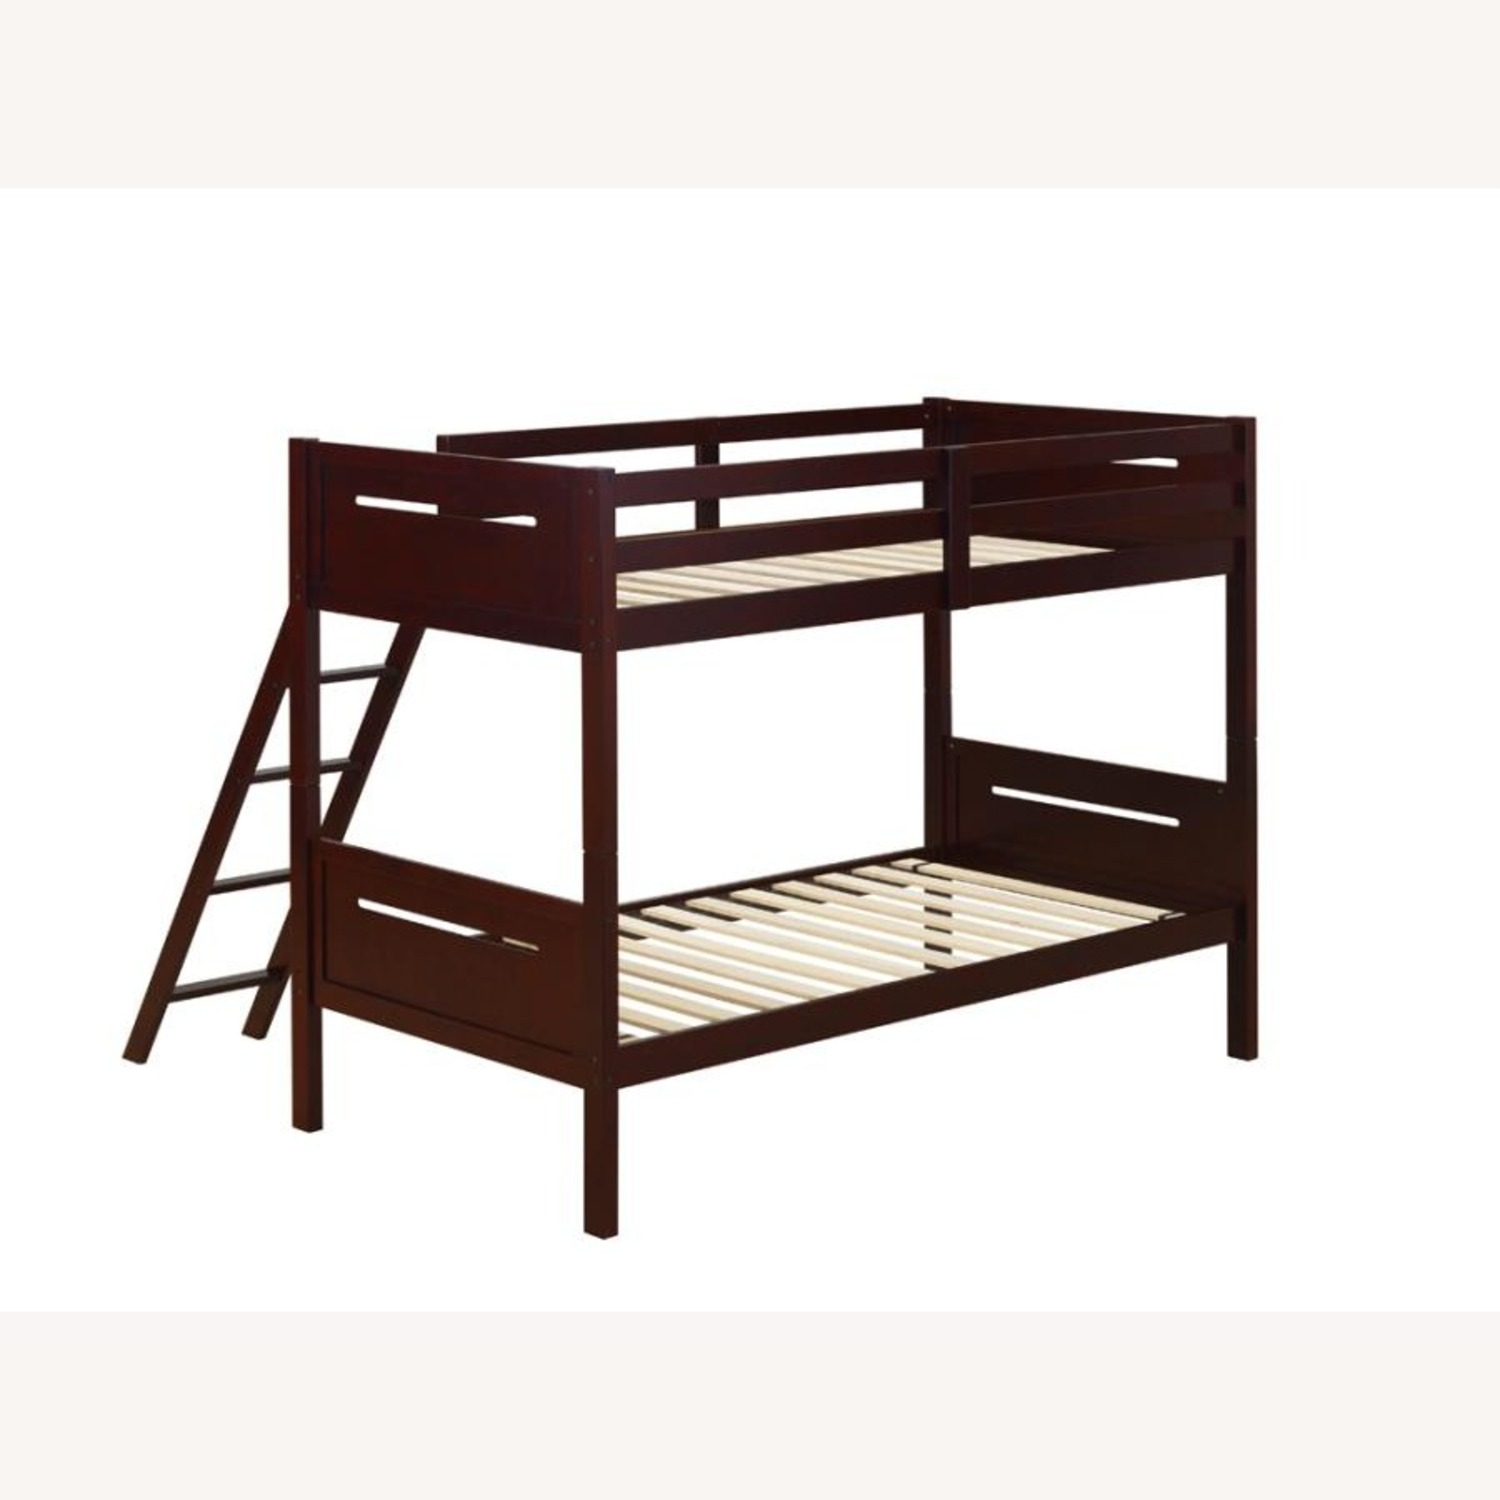 Bunk Bed In Espresso Solid Rubberwood Finish - image-2